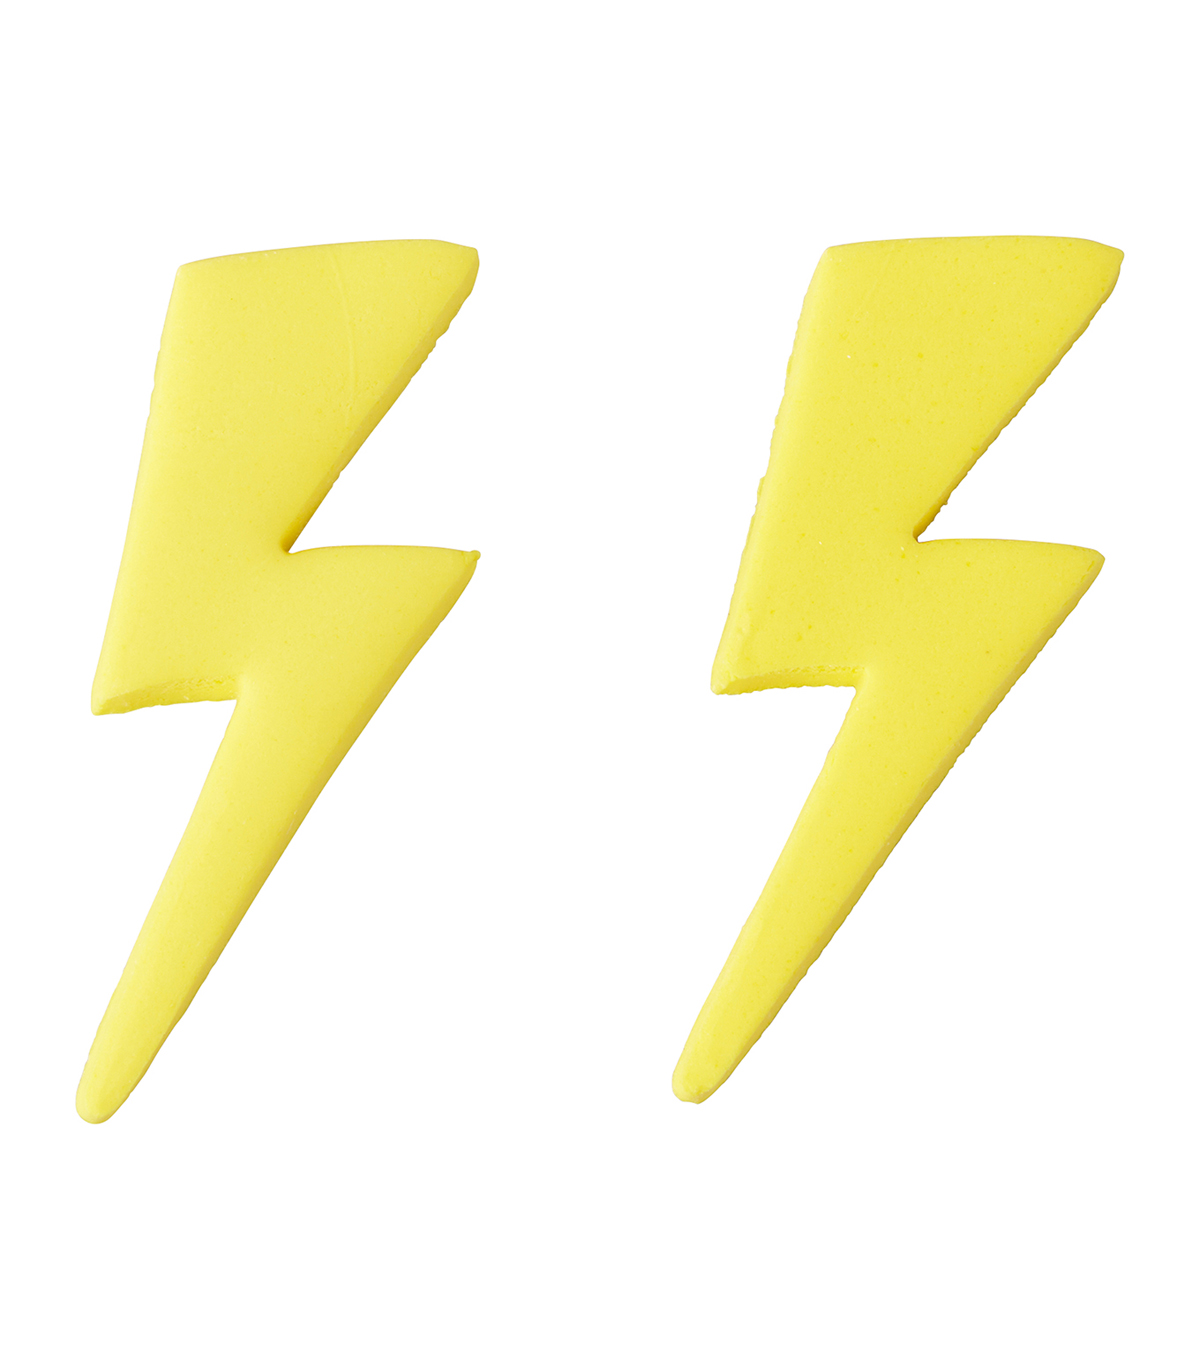 Rosanna Pansino By Wilton 12ct Lightning Bolt Icing Decorations